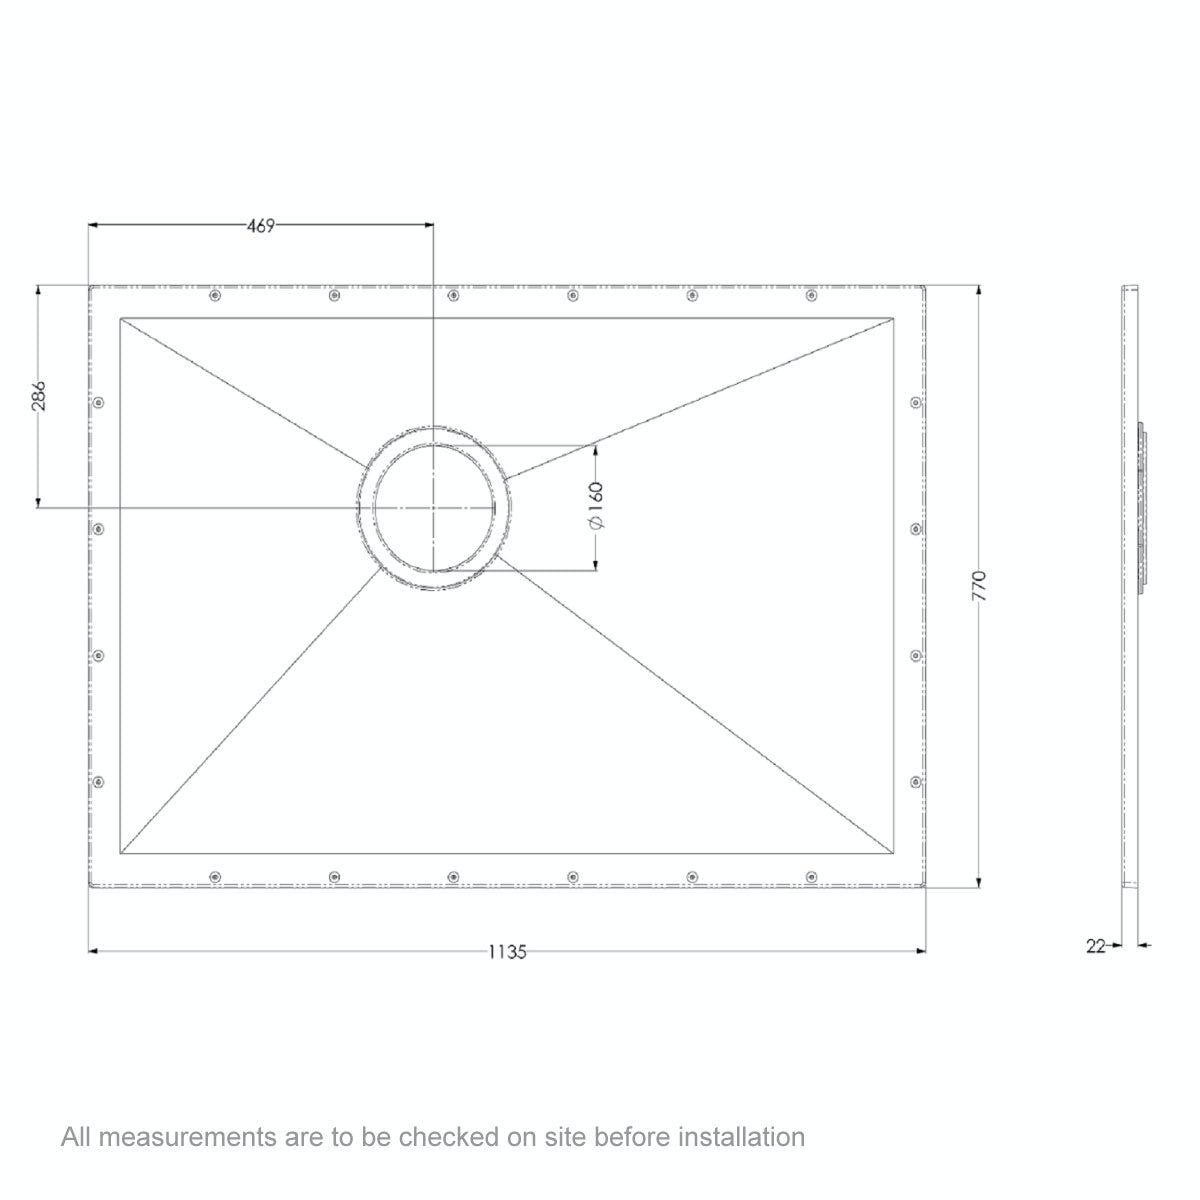 Dimensions for 1135 x 770